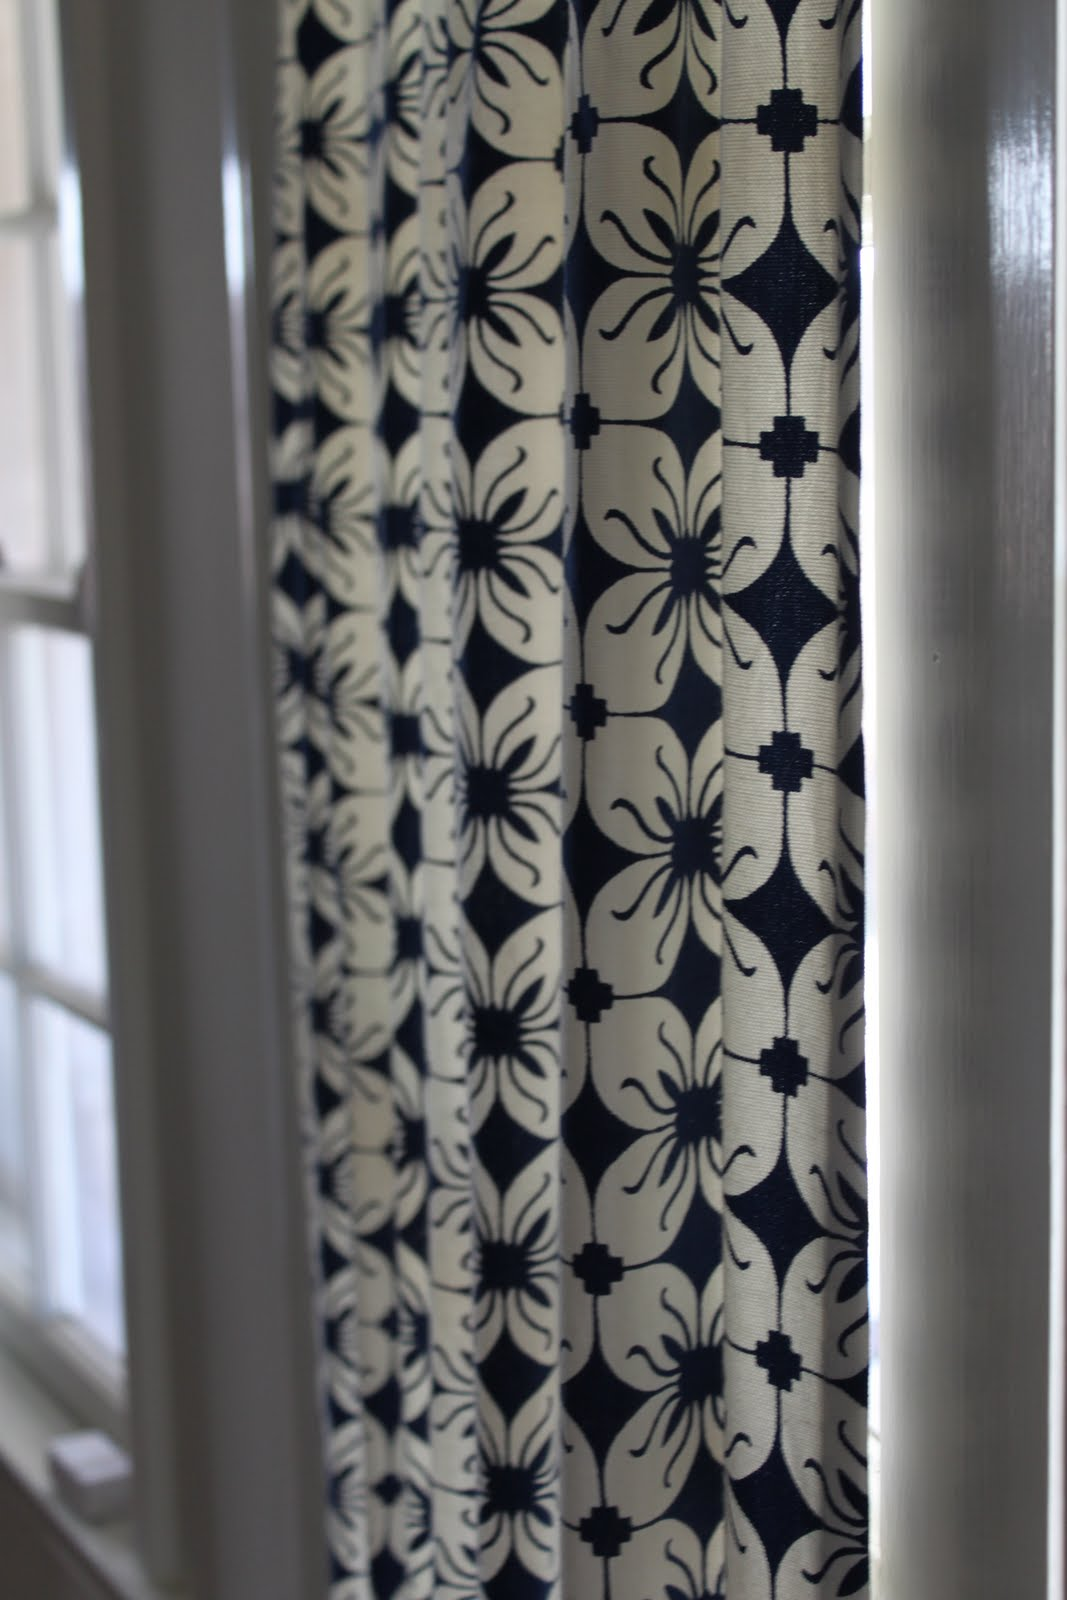 Diy French Door Curtain Panel Tutorial Before After Pretty Prudent